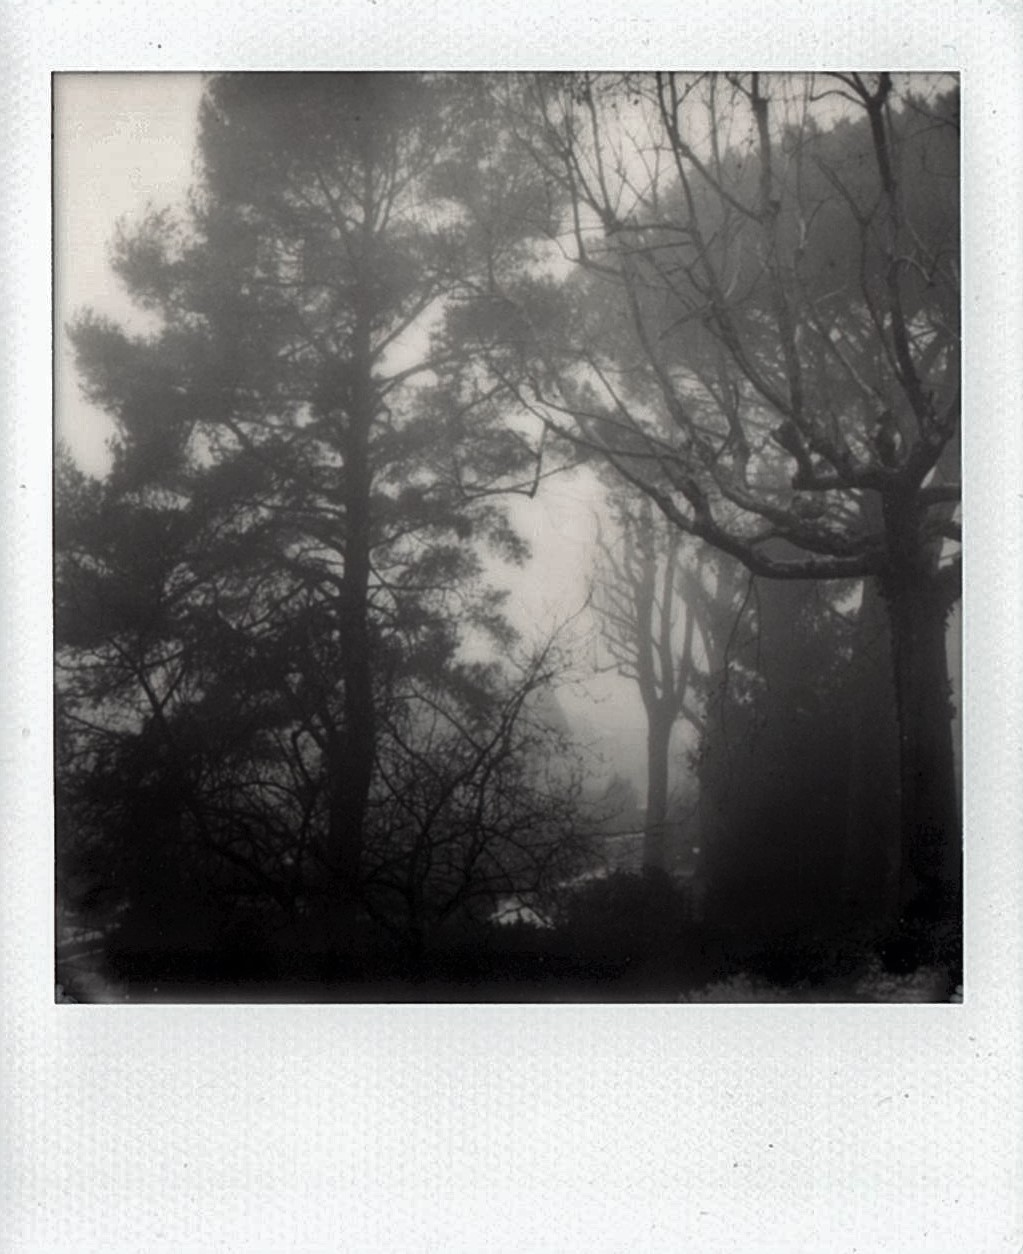 Untitled  | SX-70 | Polaroid Originals Black and White | Marina Inì